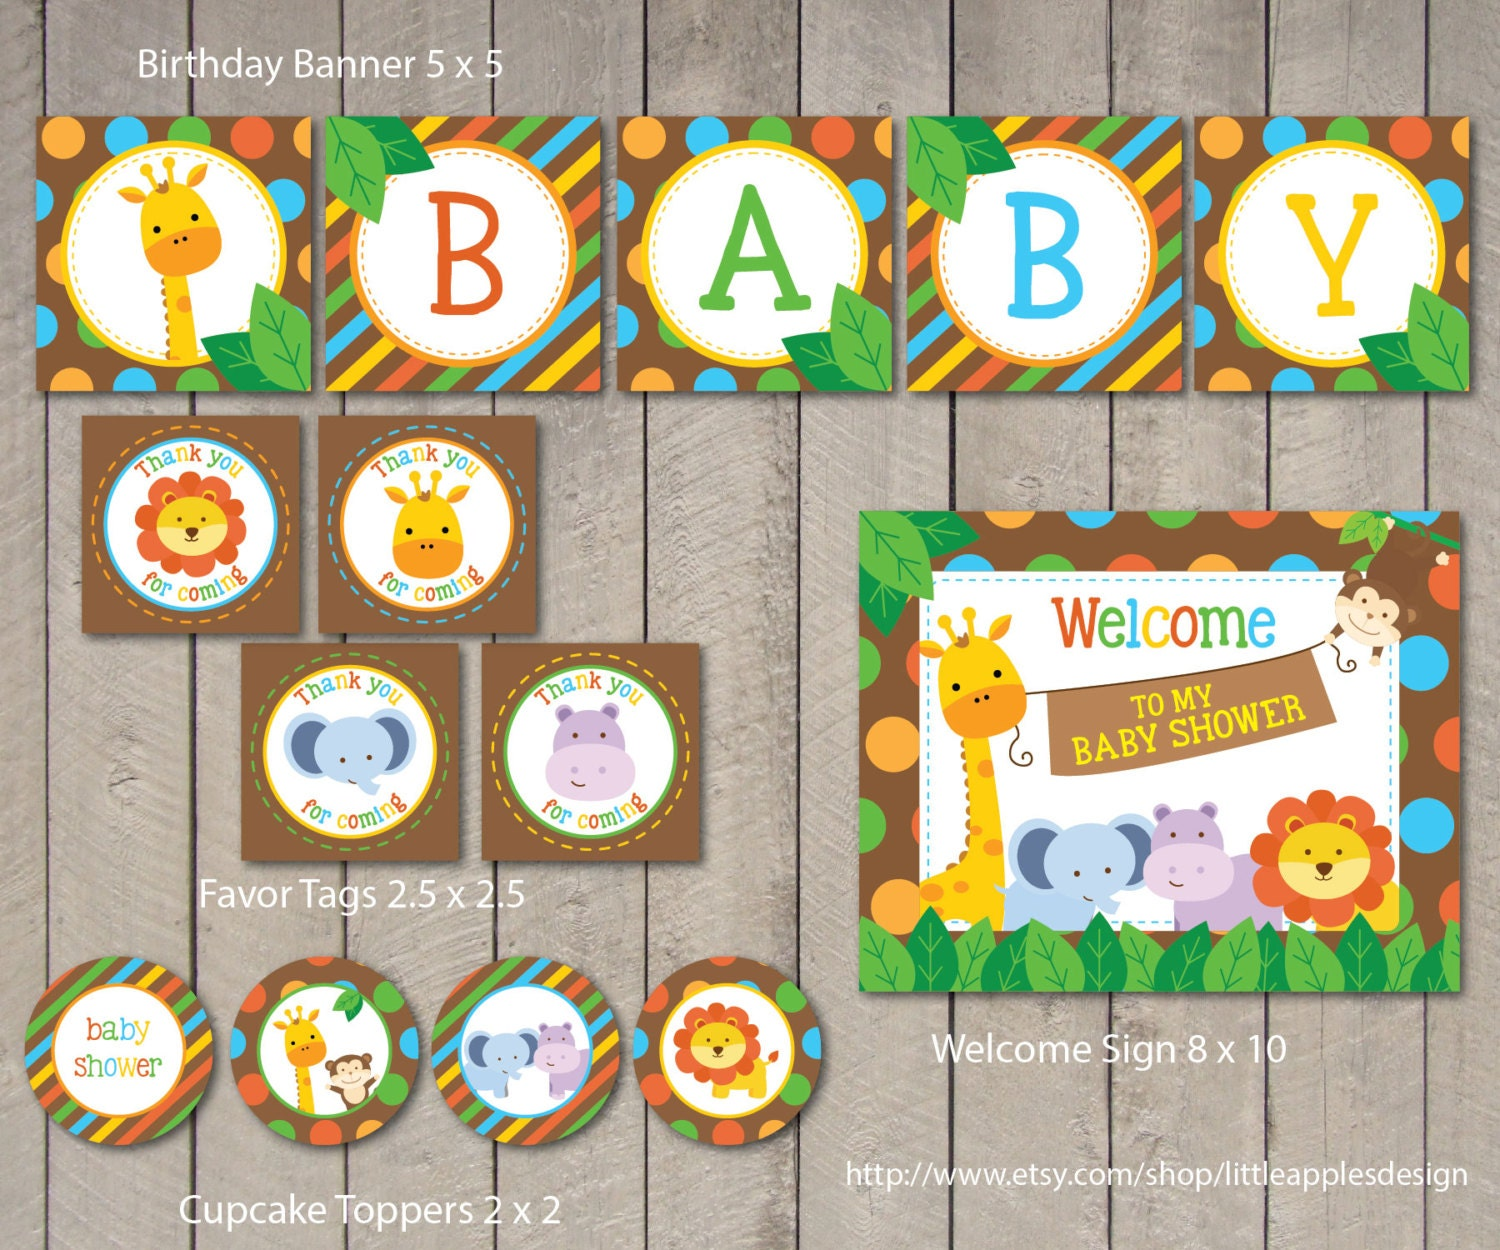 Safari Baby Shower Package / Safari Baby Shower Pack by DreamyDuck